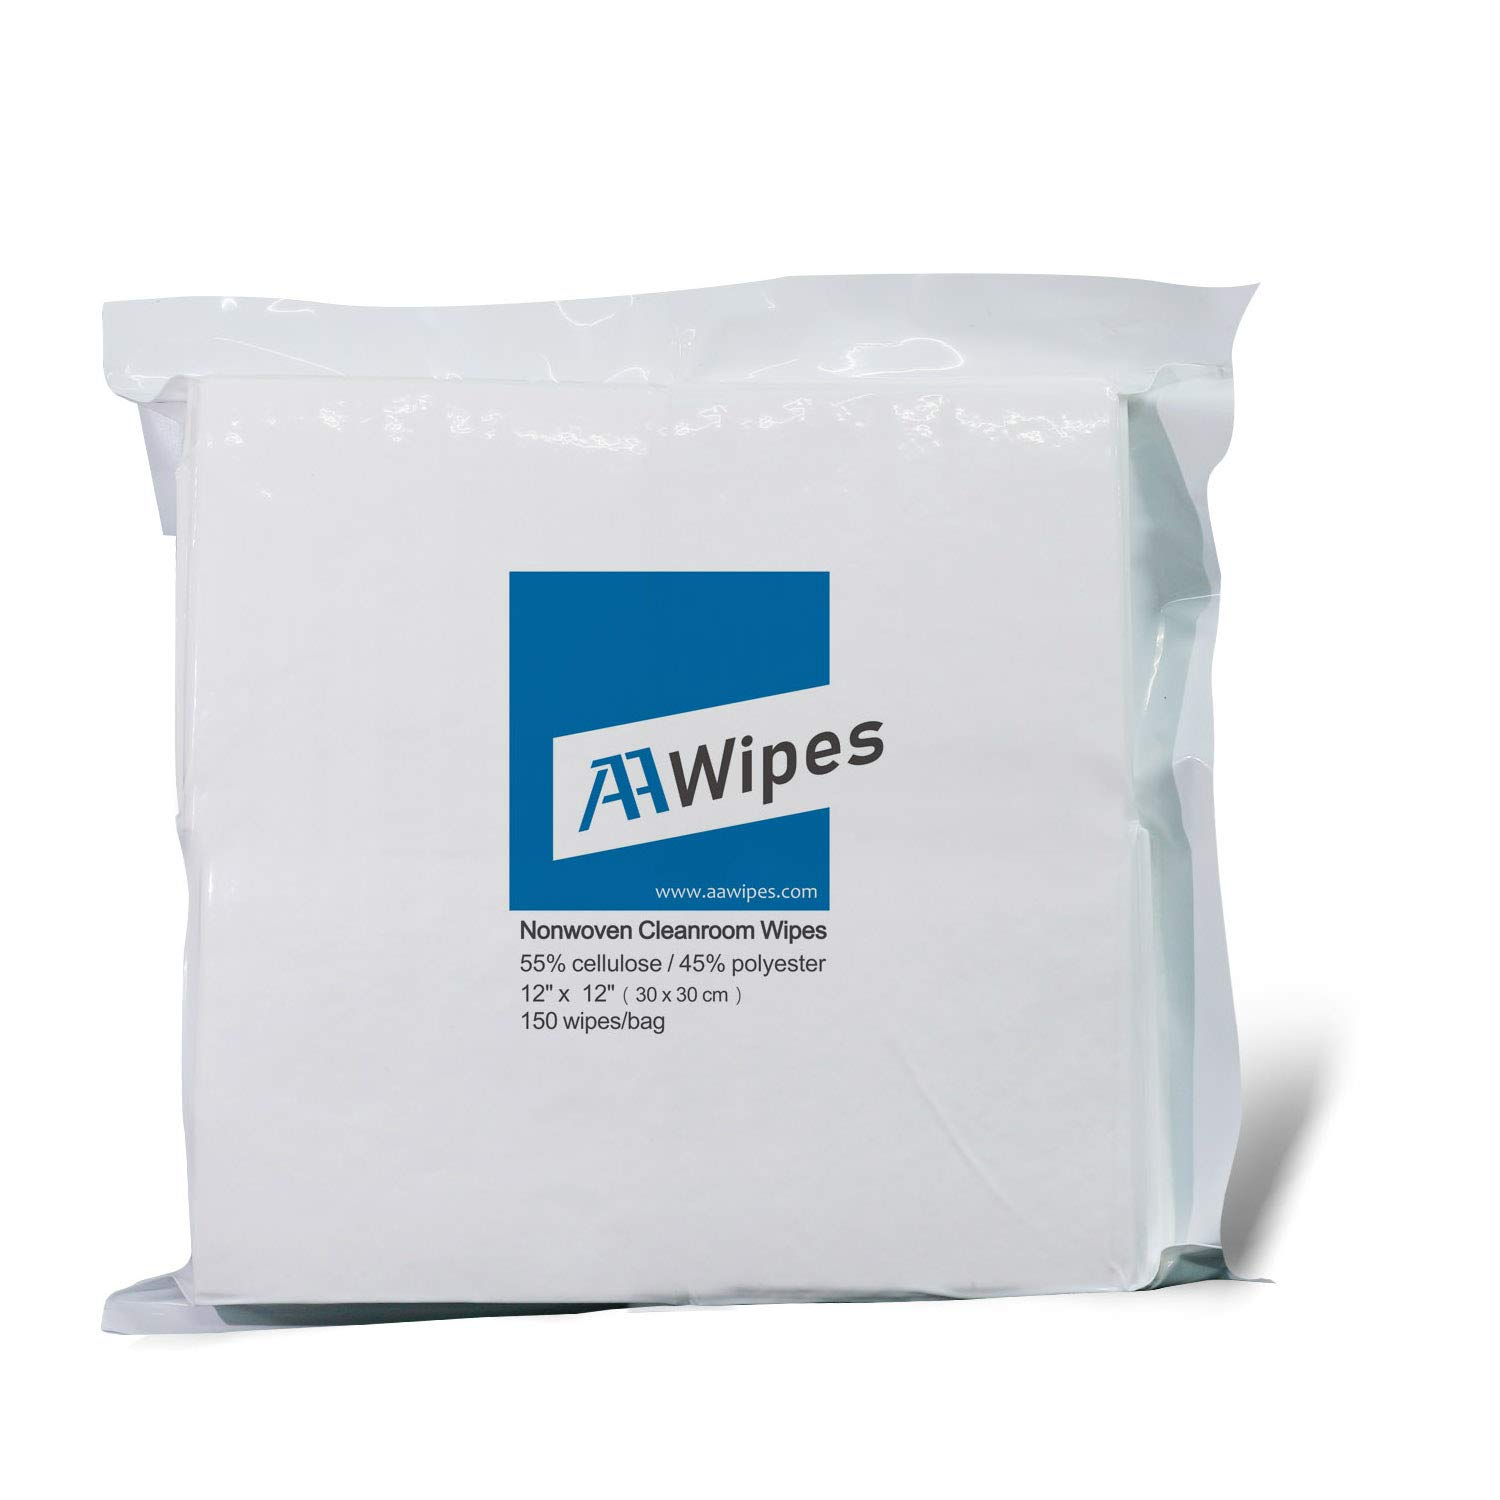 Professional Grade AAWipes Cleanroom Wipes Nonwoven Wipers Cellulose//Polyester Blend 12 x 12 Pharmaceutical Printing and Semiconductor Industries White for Lab Electronics Bag of 150 Pcs